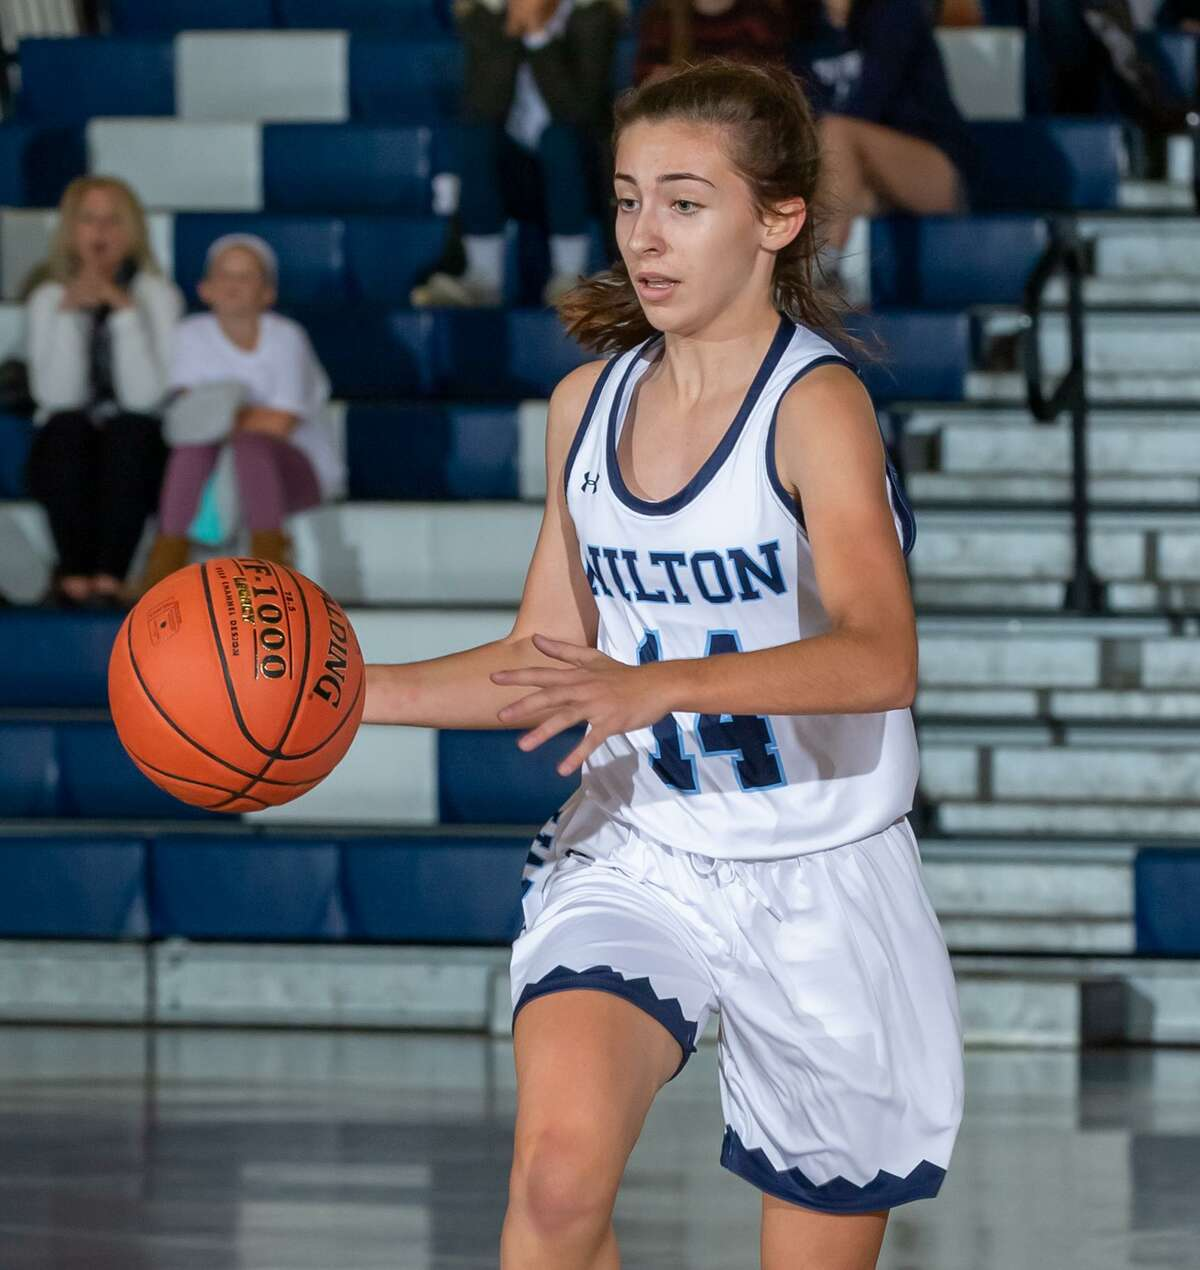 Leah Martins and the Wilton girls hoop team play at Suffield in the first round of the state tournament.